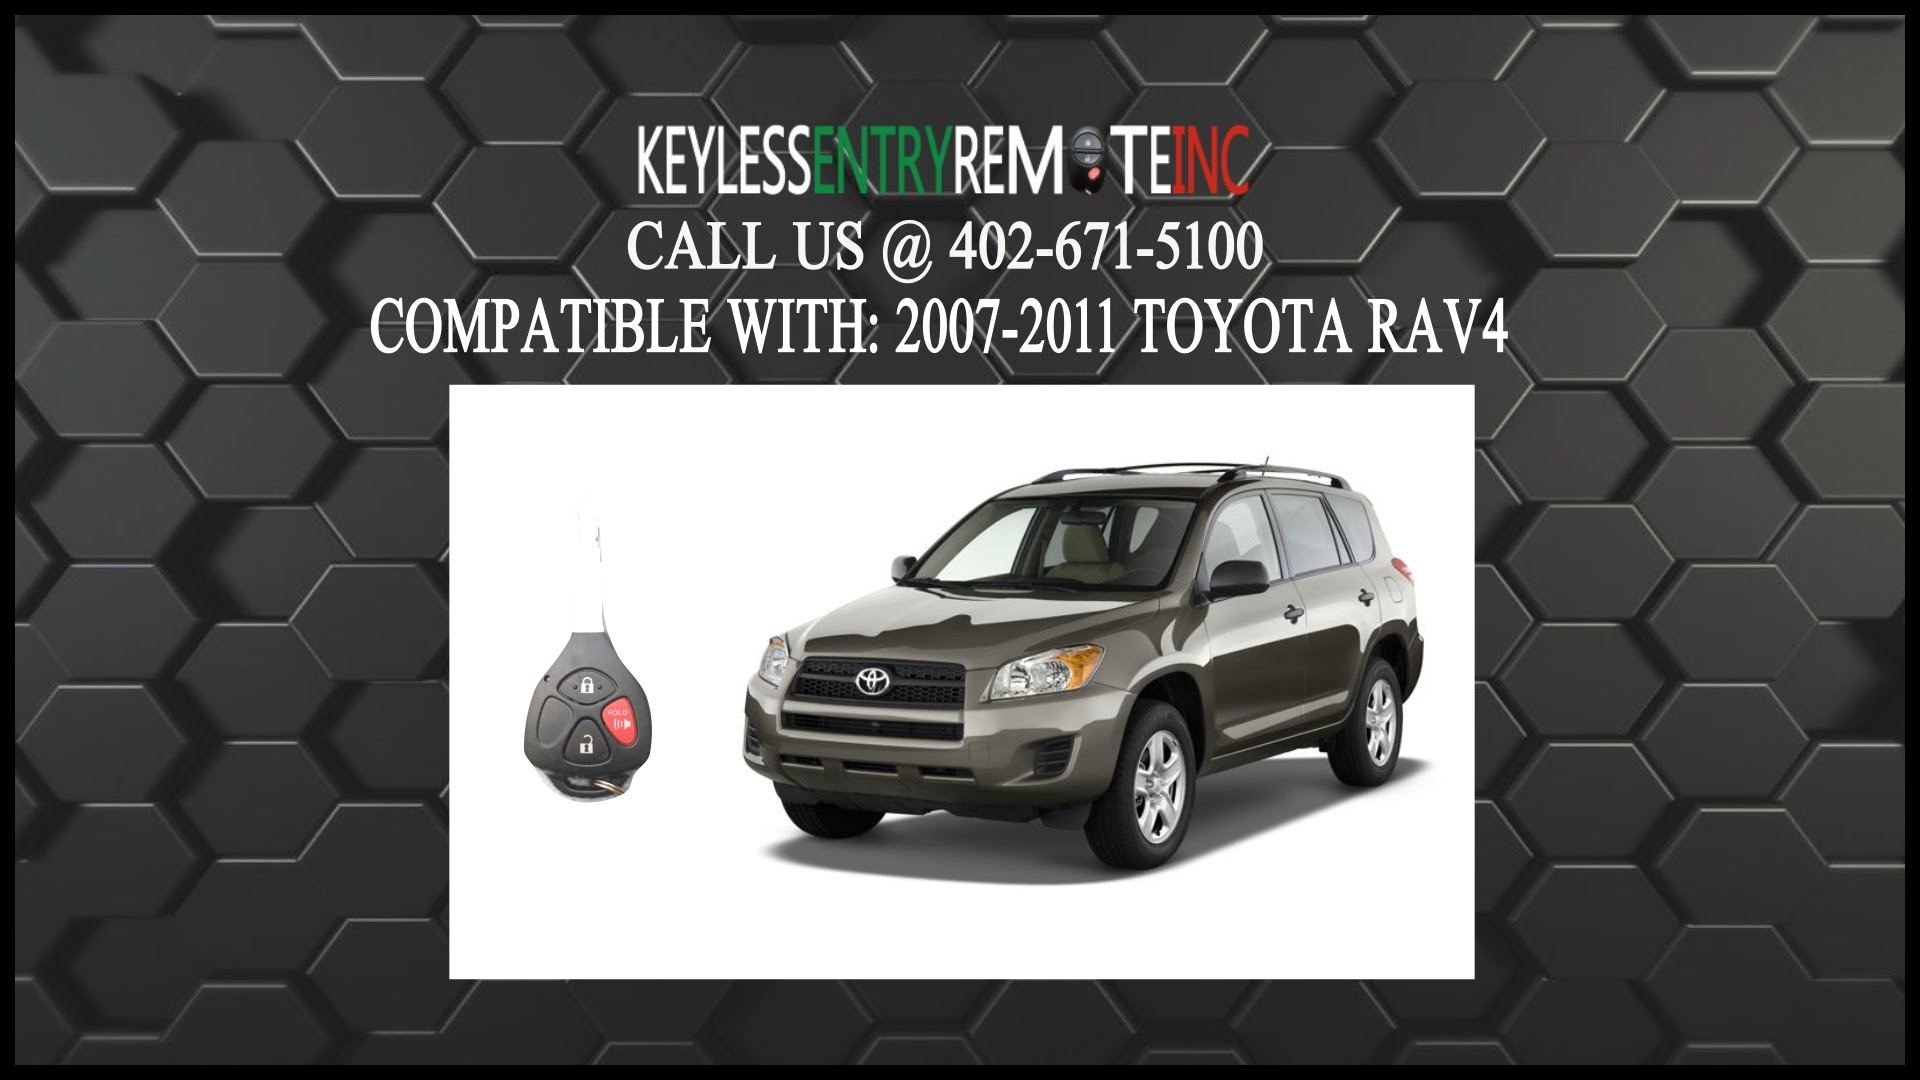 How To Replace Toyota Rav4 Key Fob Battery 2007 2008 2009 2010 2011 Keyless Entry Remote Inc